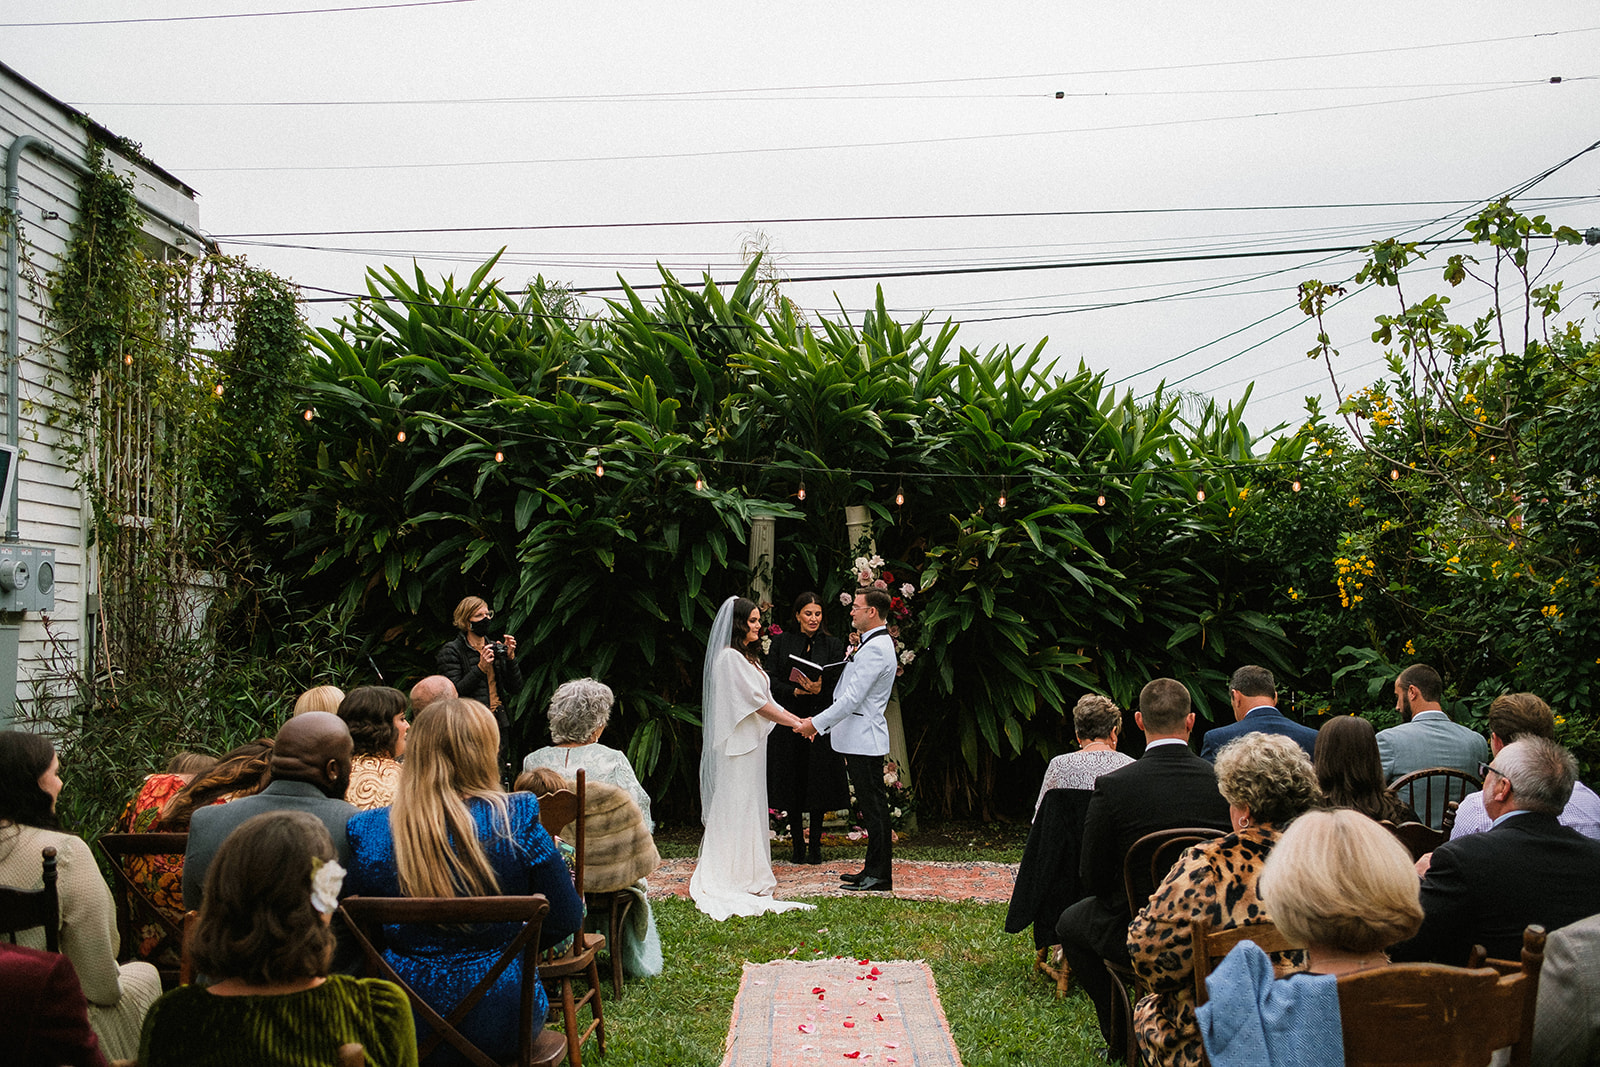 Intimate wedding officiated by Let's Elope New Orleans